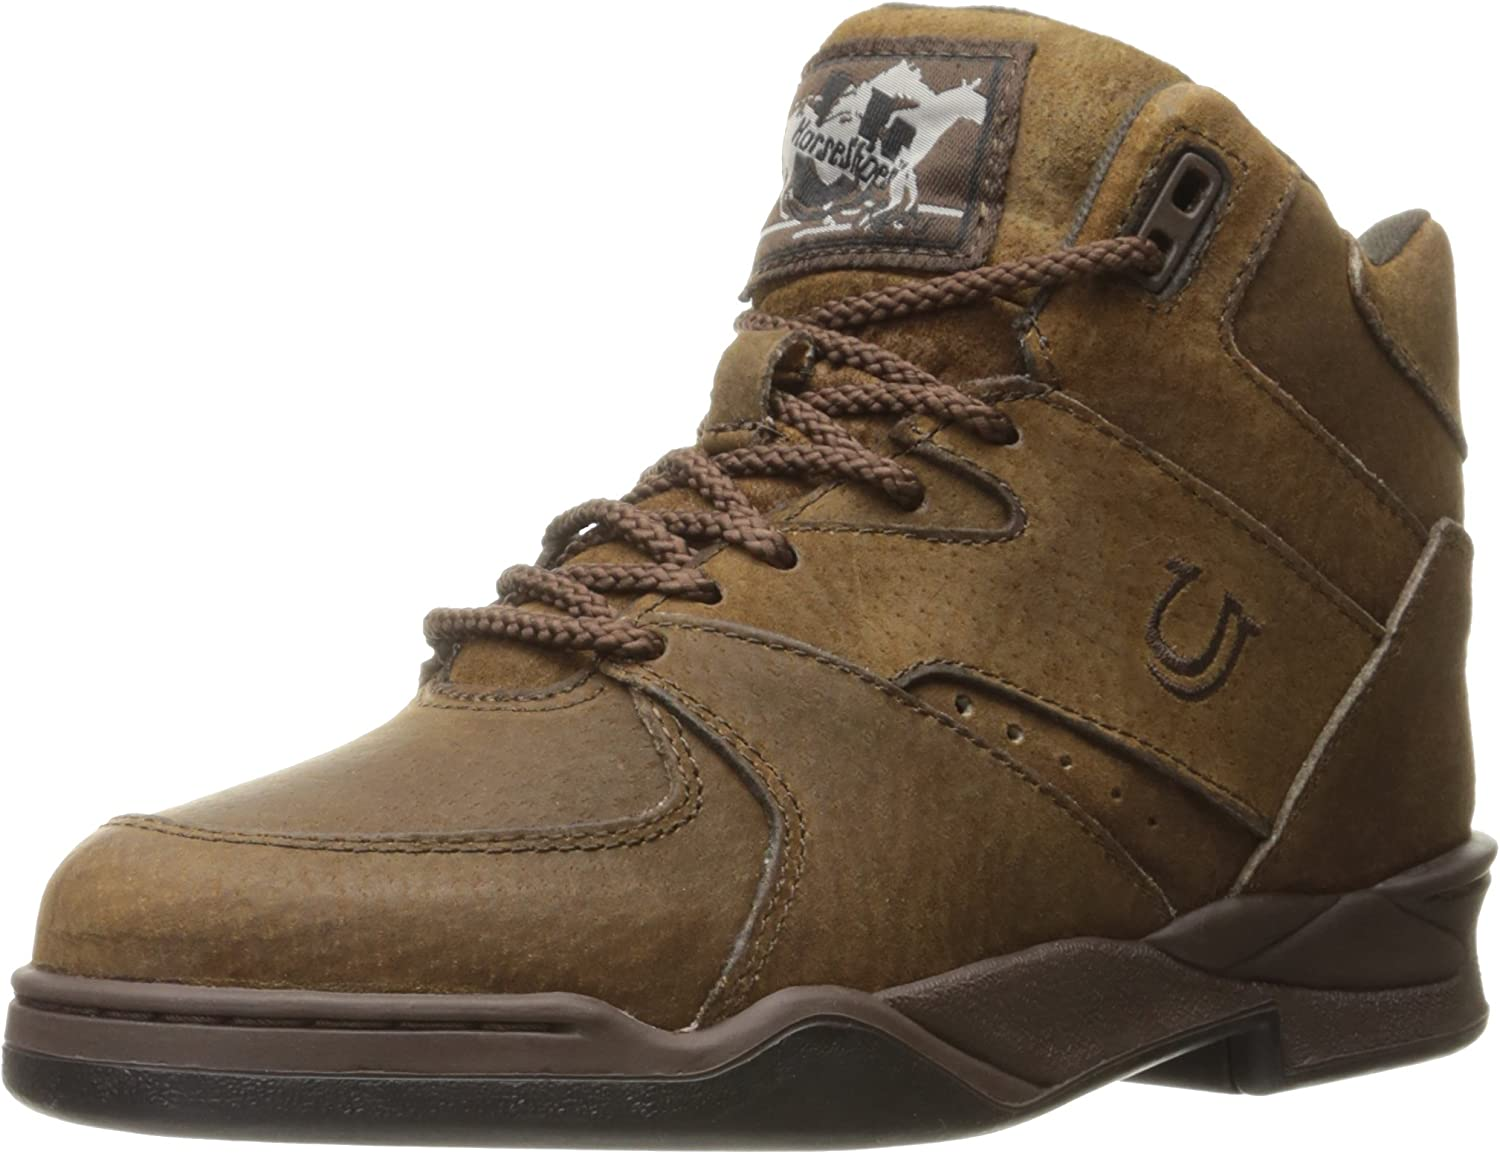 Roper Women's Horseshoe Hiking Shoe